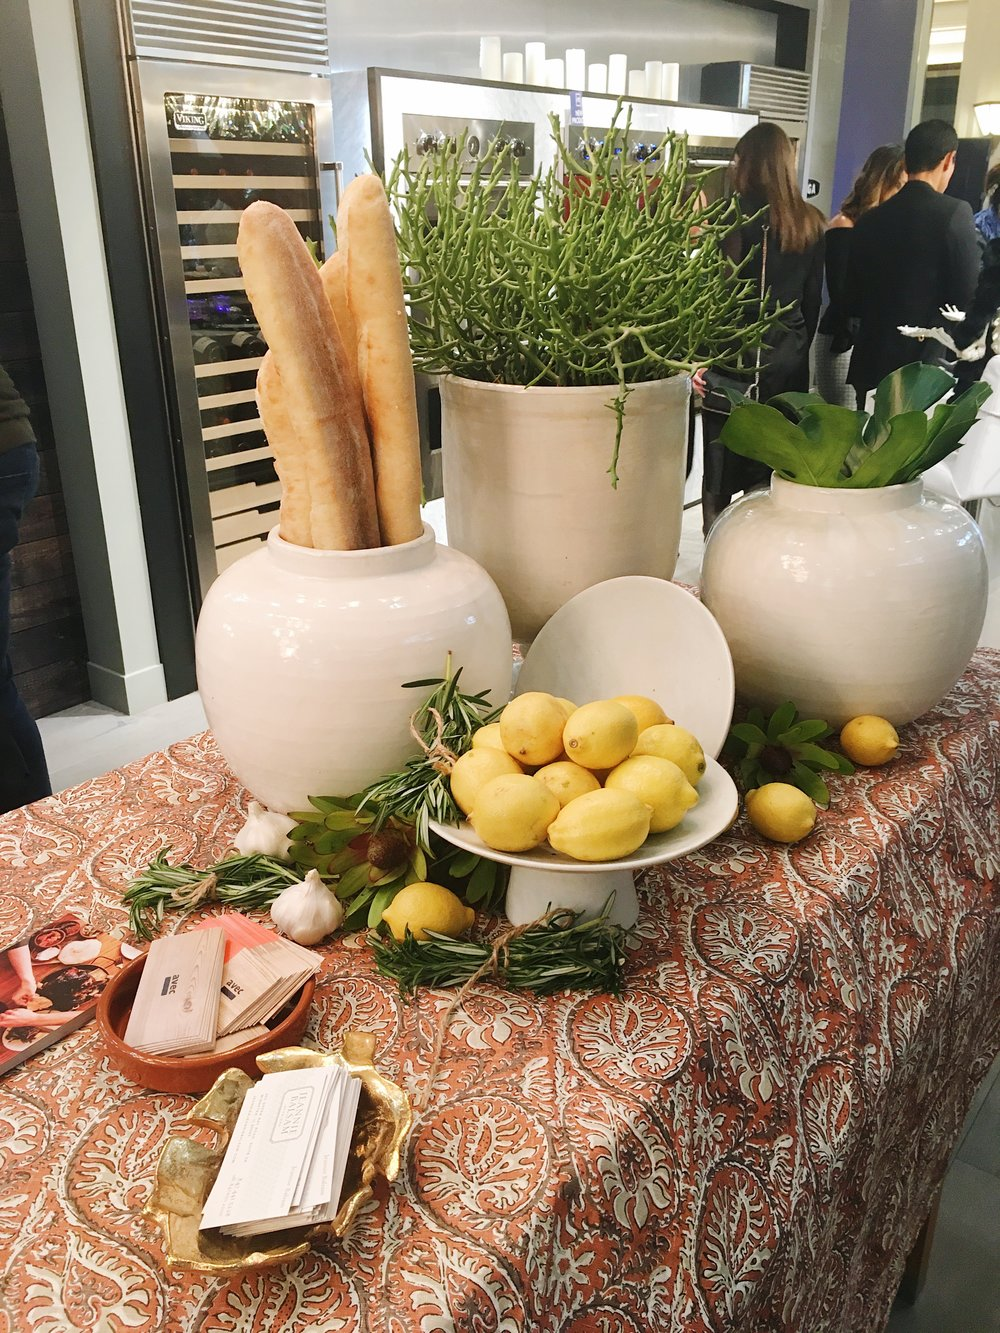 The Mediterranean table decor we designed was the perfect partner for our Avec restaurant pairing at the Modern Luxury Interiors Chicago's Chef's Night Out!